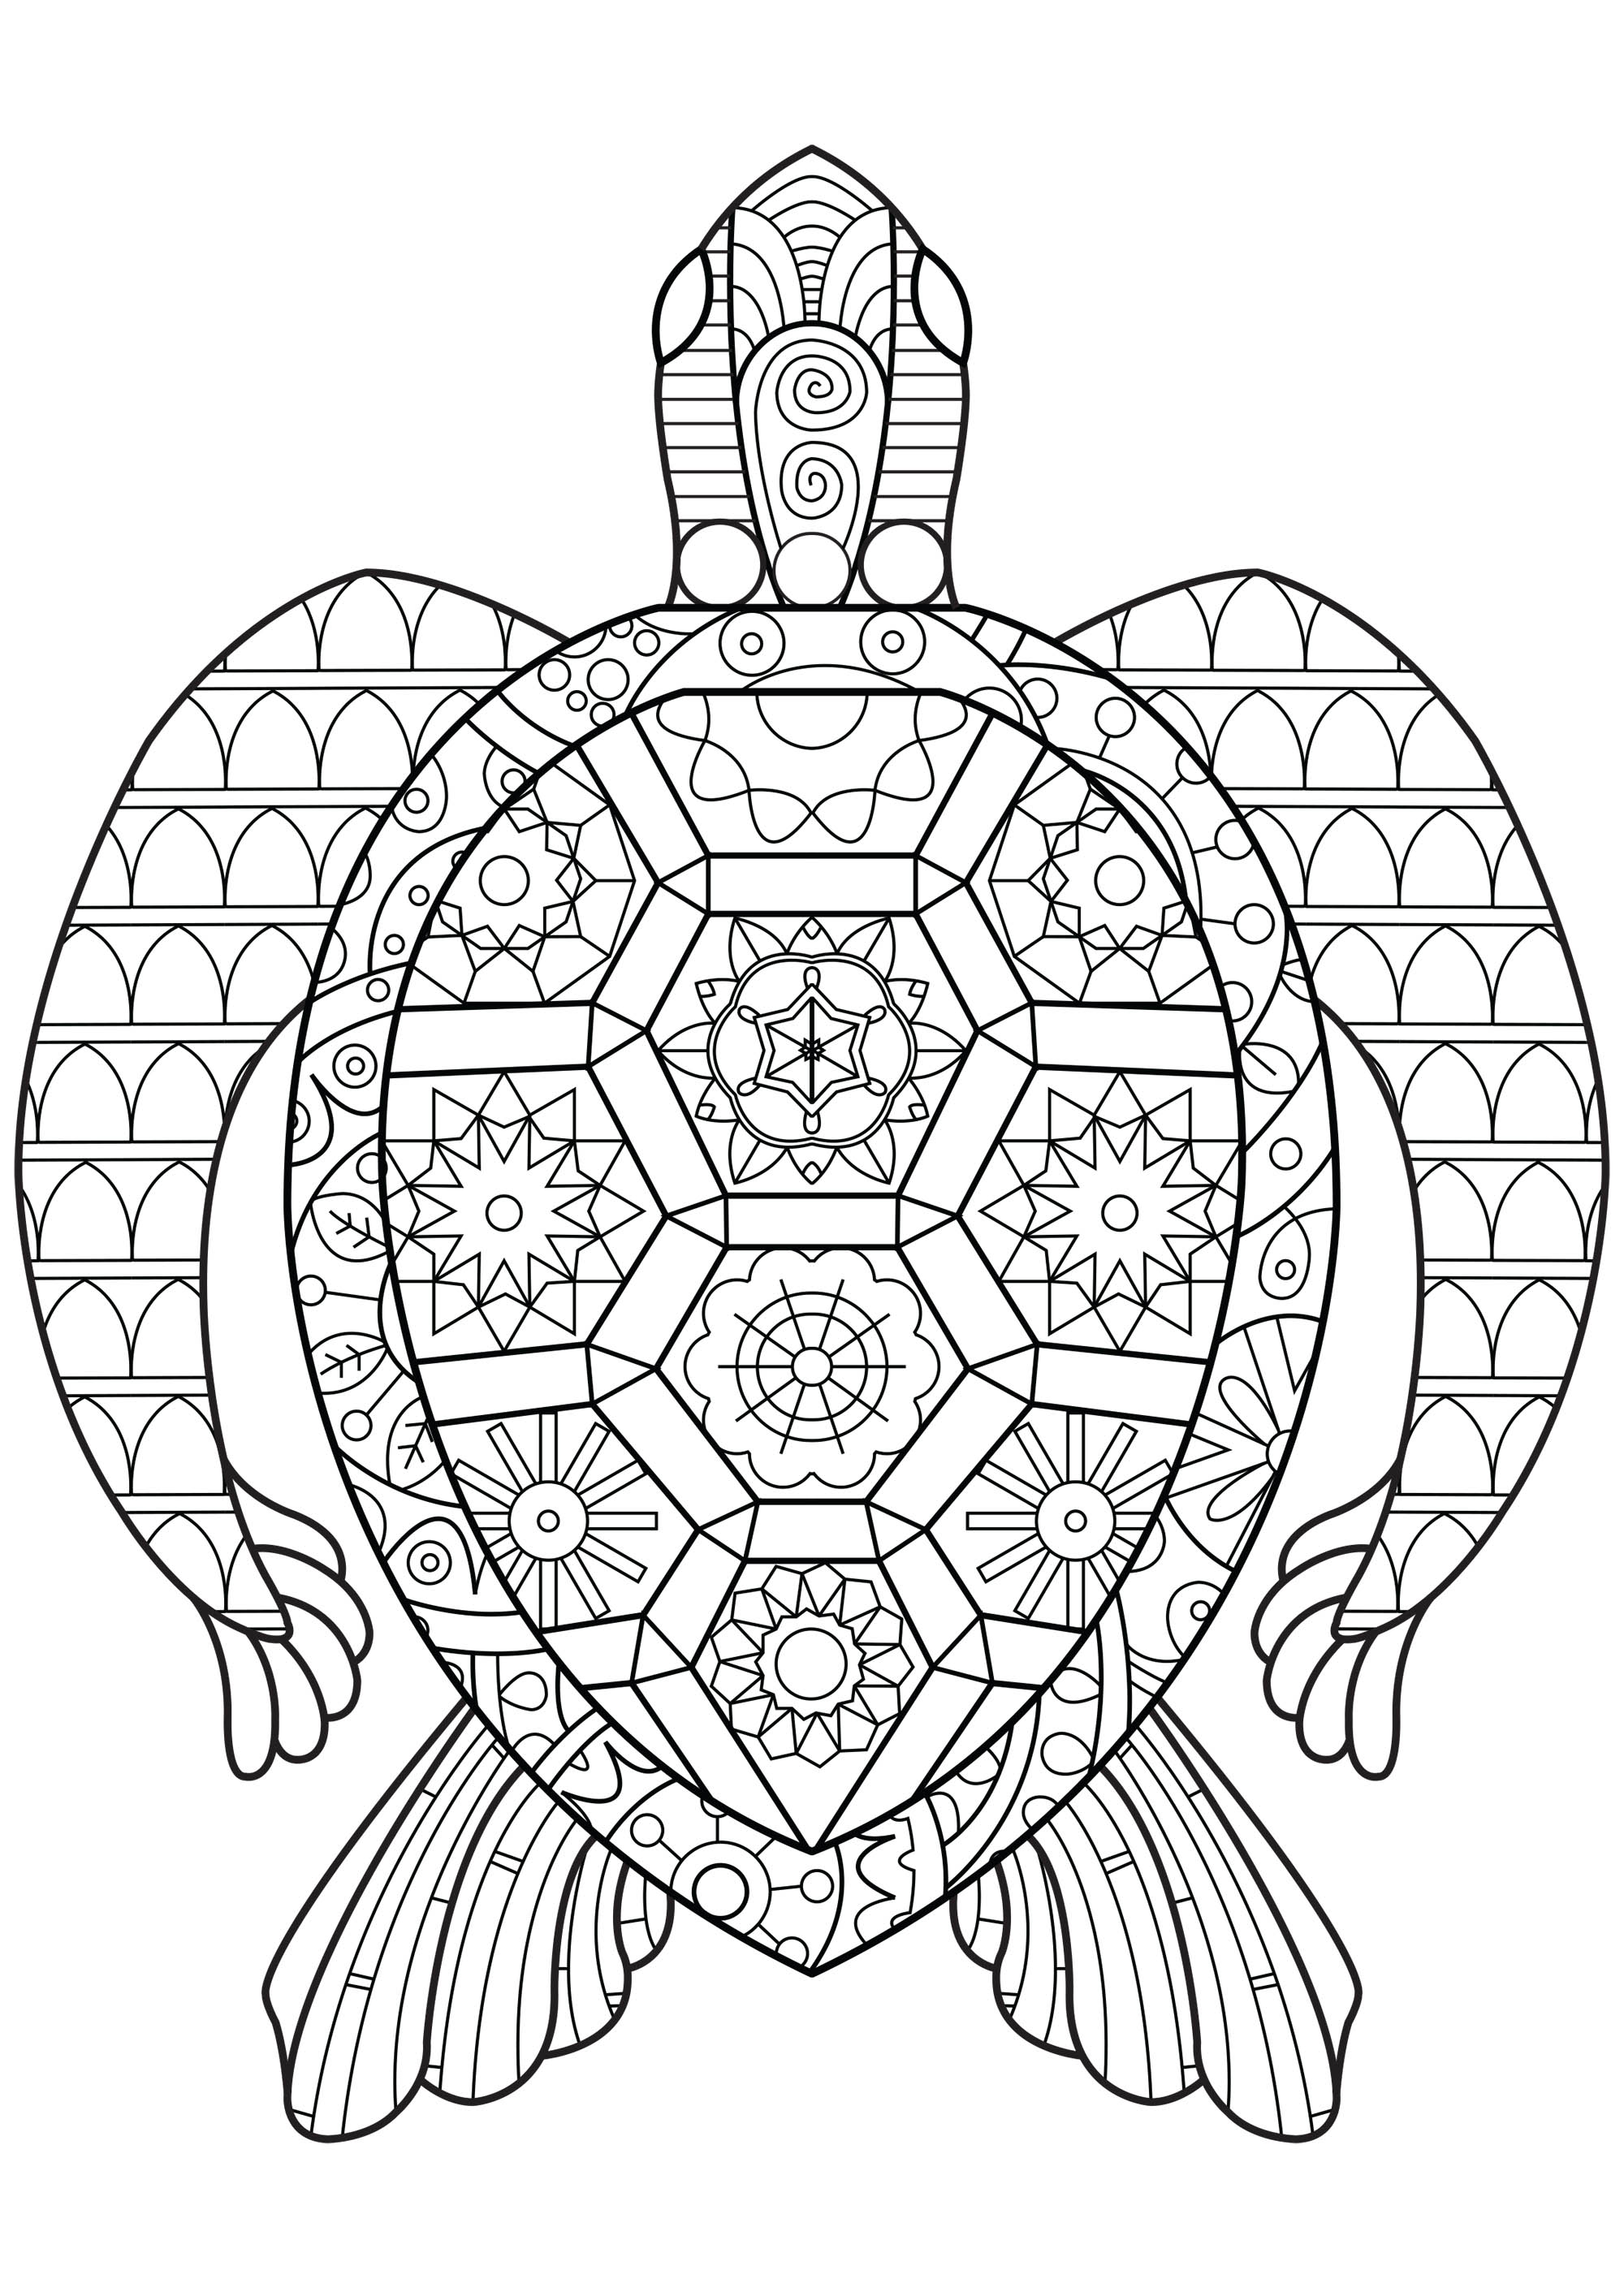 Turtles Adult Coloring Pages